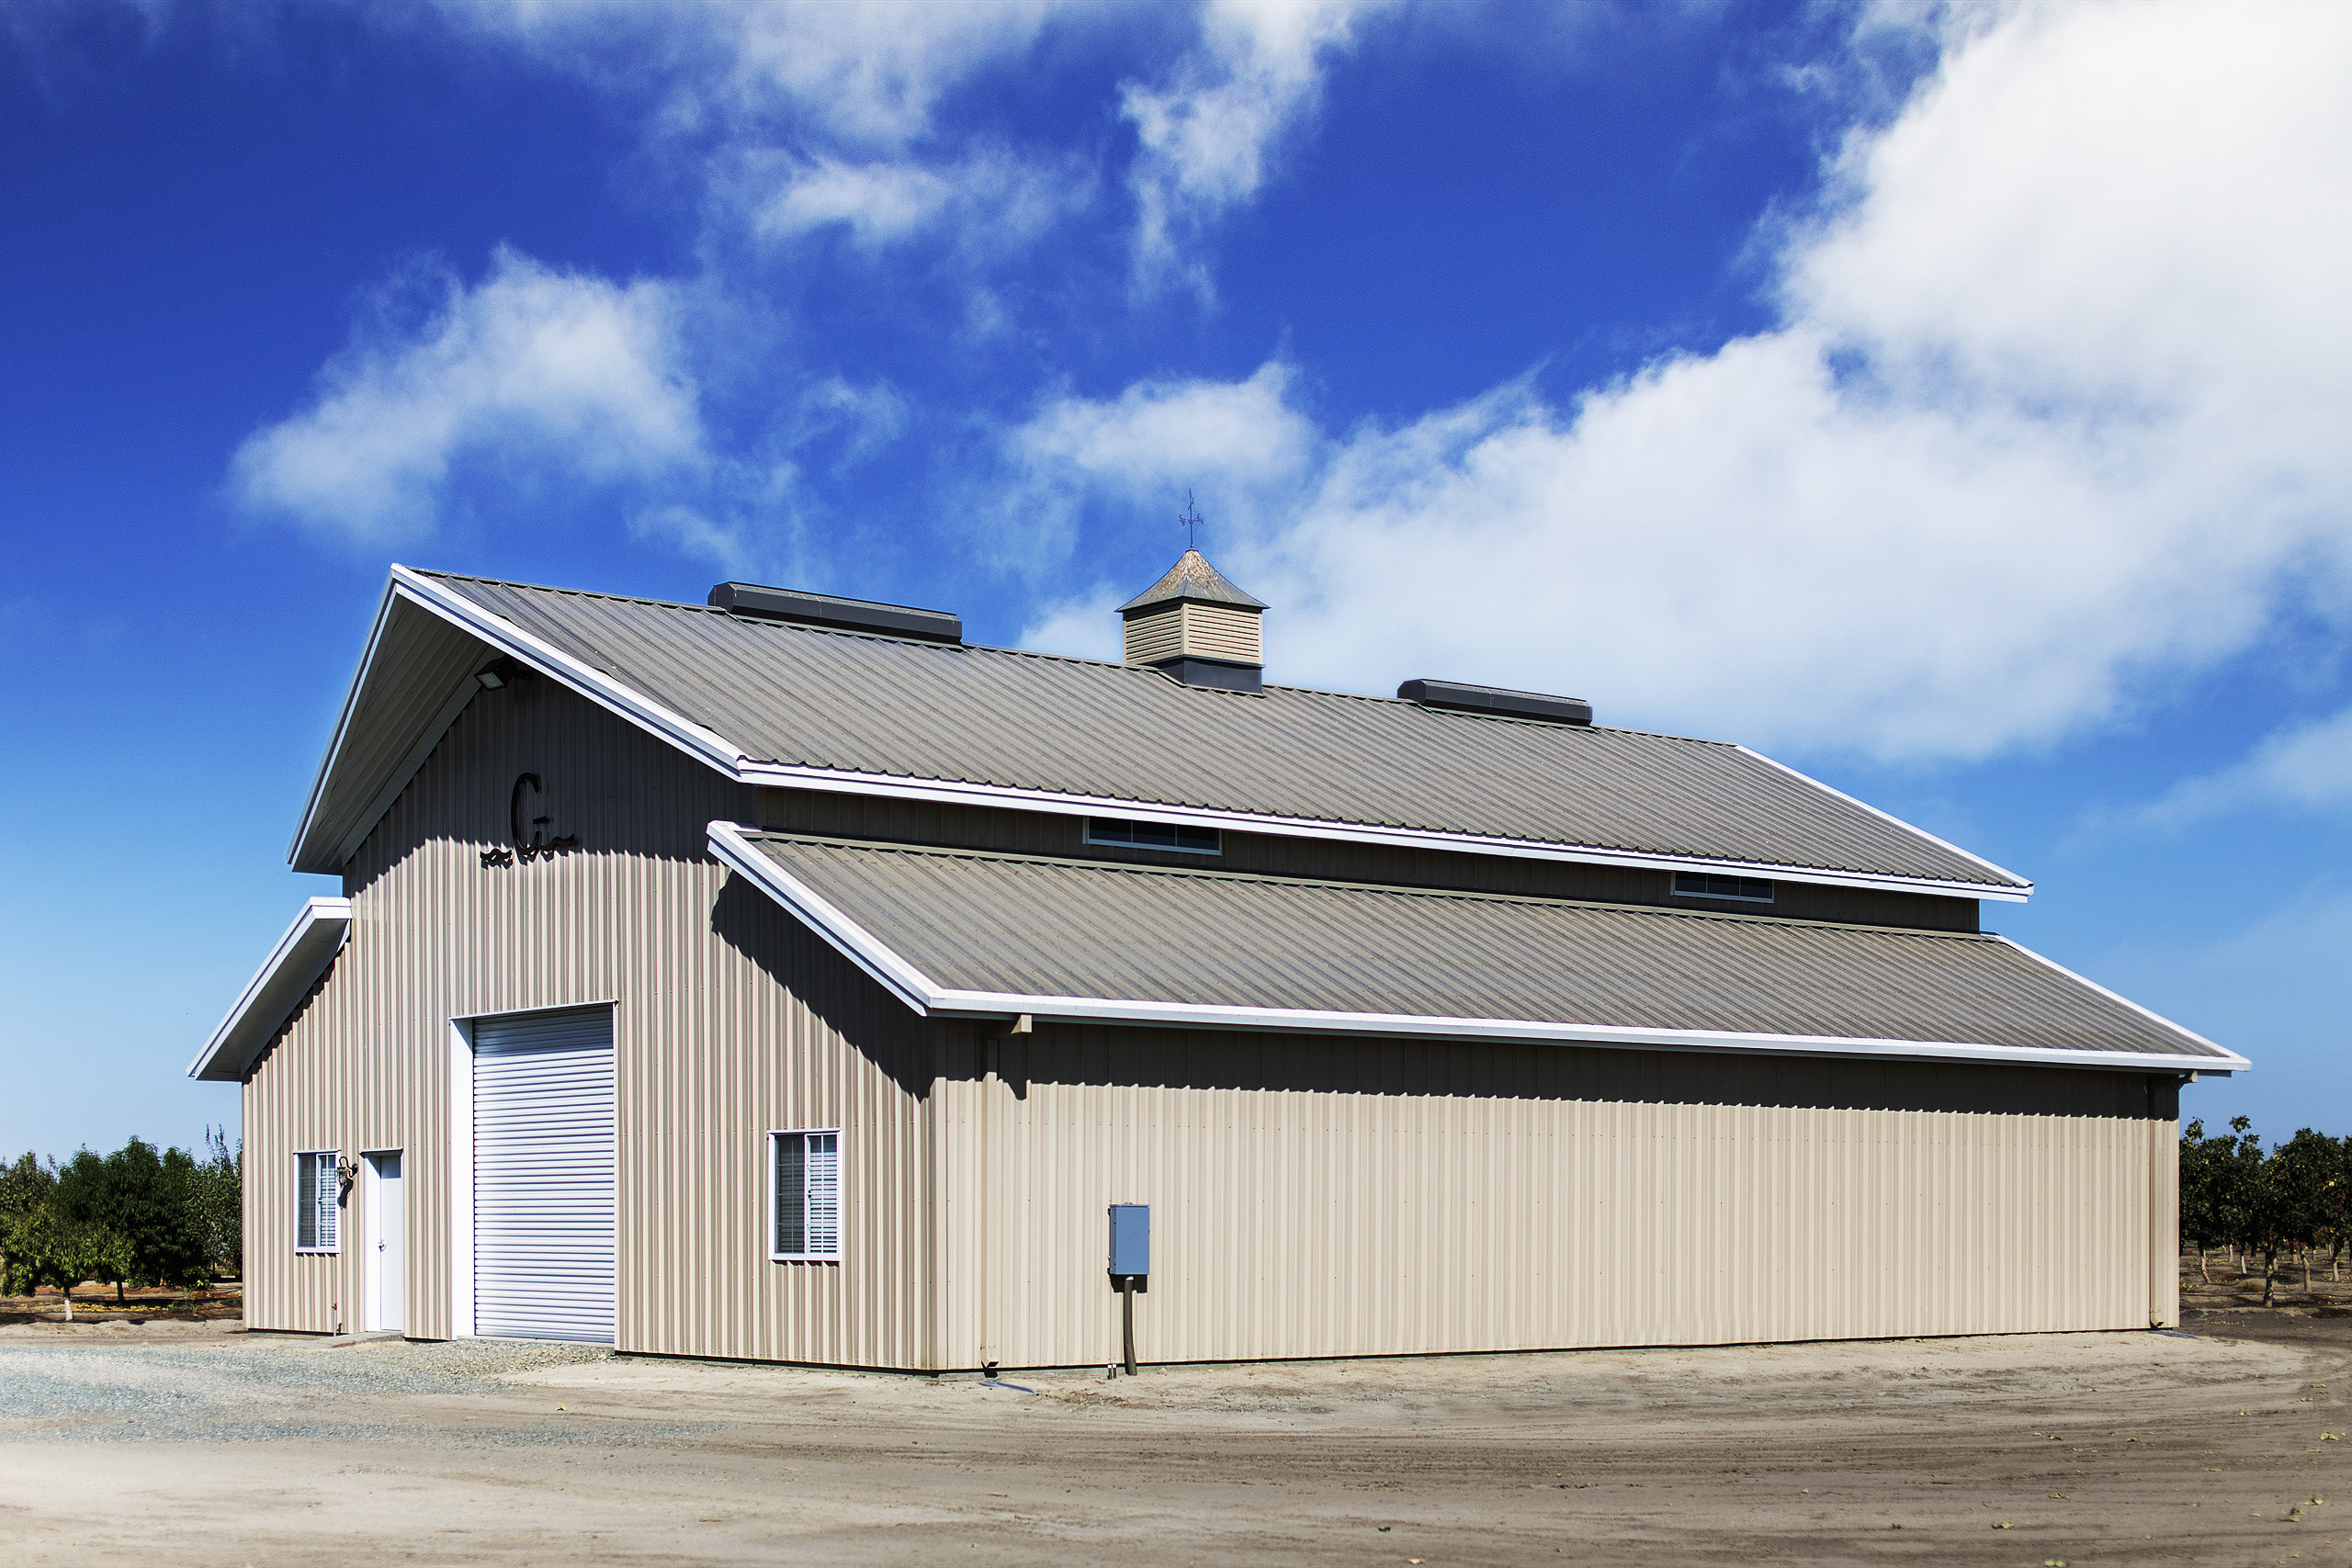 Borga fresno california steel metal buildings roofing sheeting tan grey white blue GILKEY CORCORAN